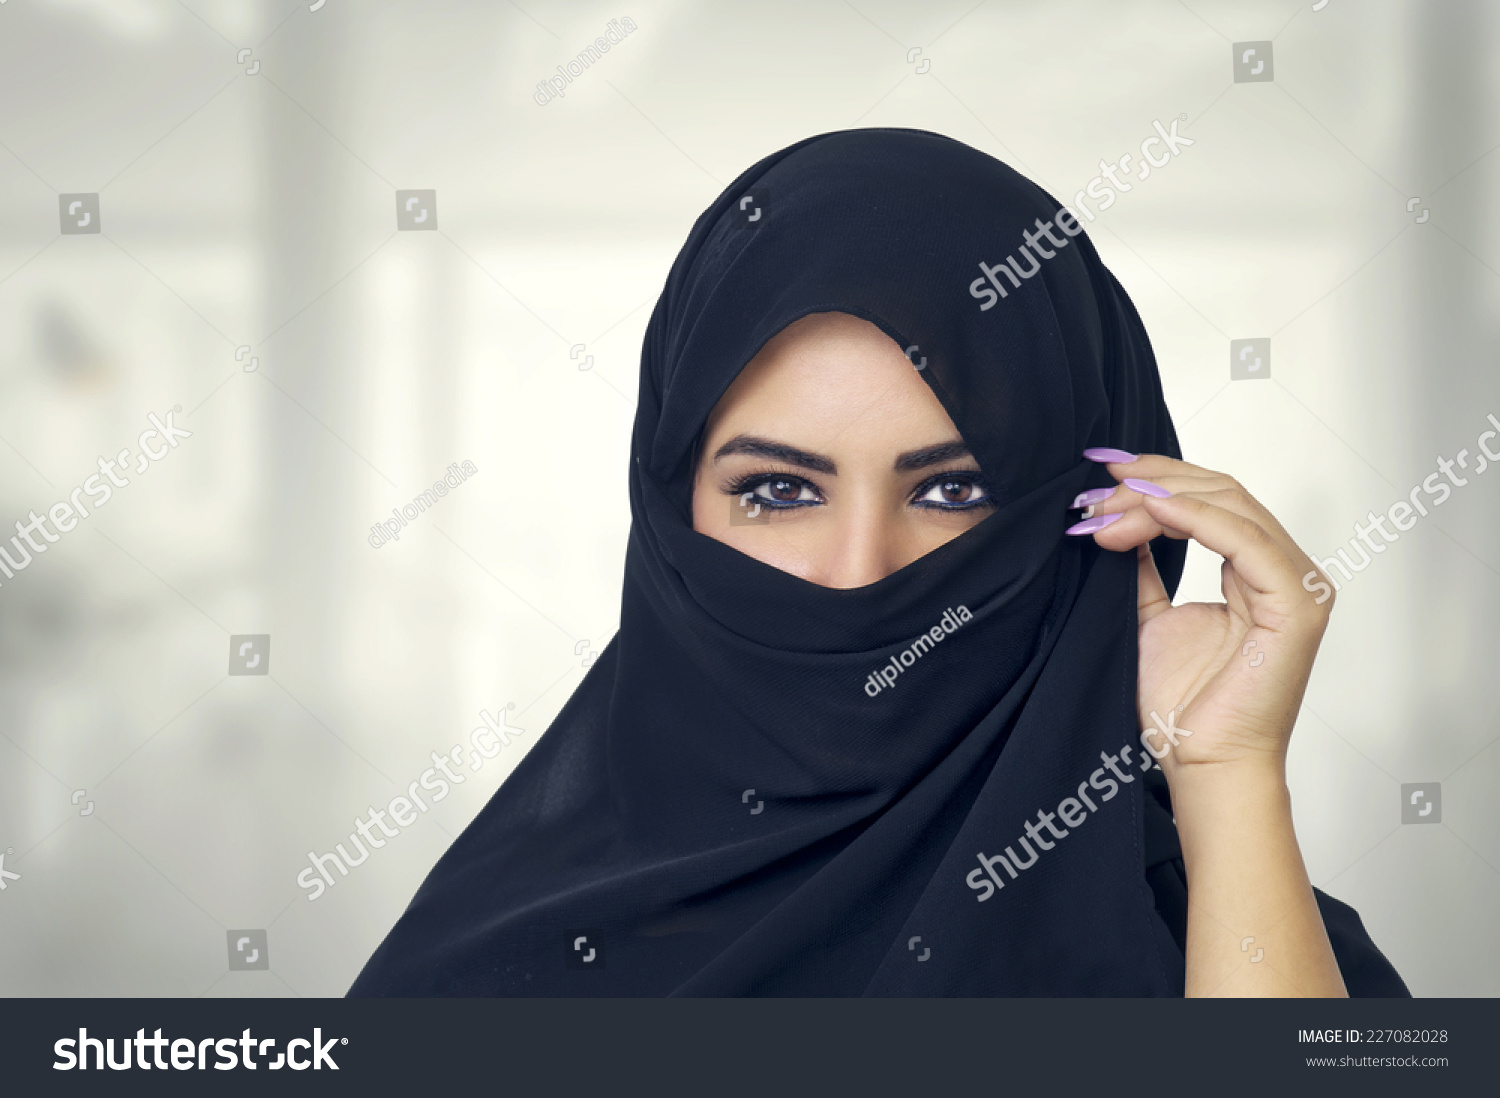 paden single muslim girls New muslim girl dating dating loading how to speak to a muslim girl & dating in islam - duration: 10:26 muslim tube 26,839 views 10:26.